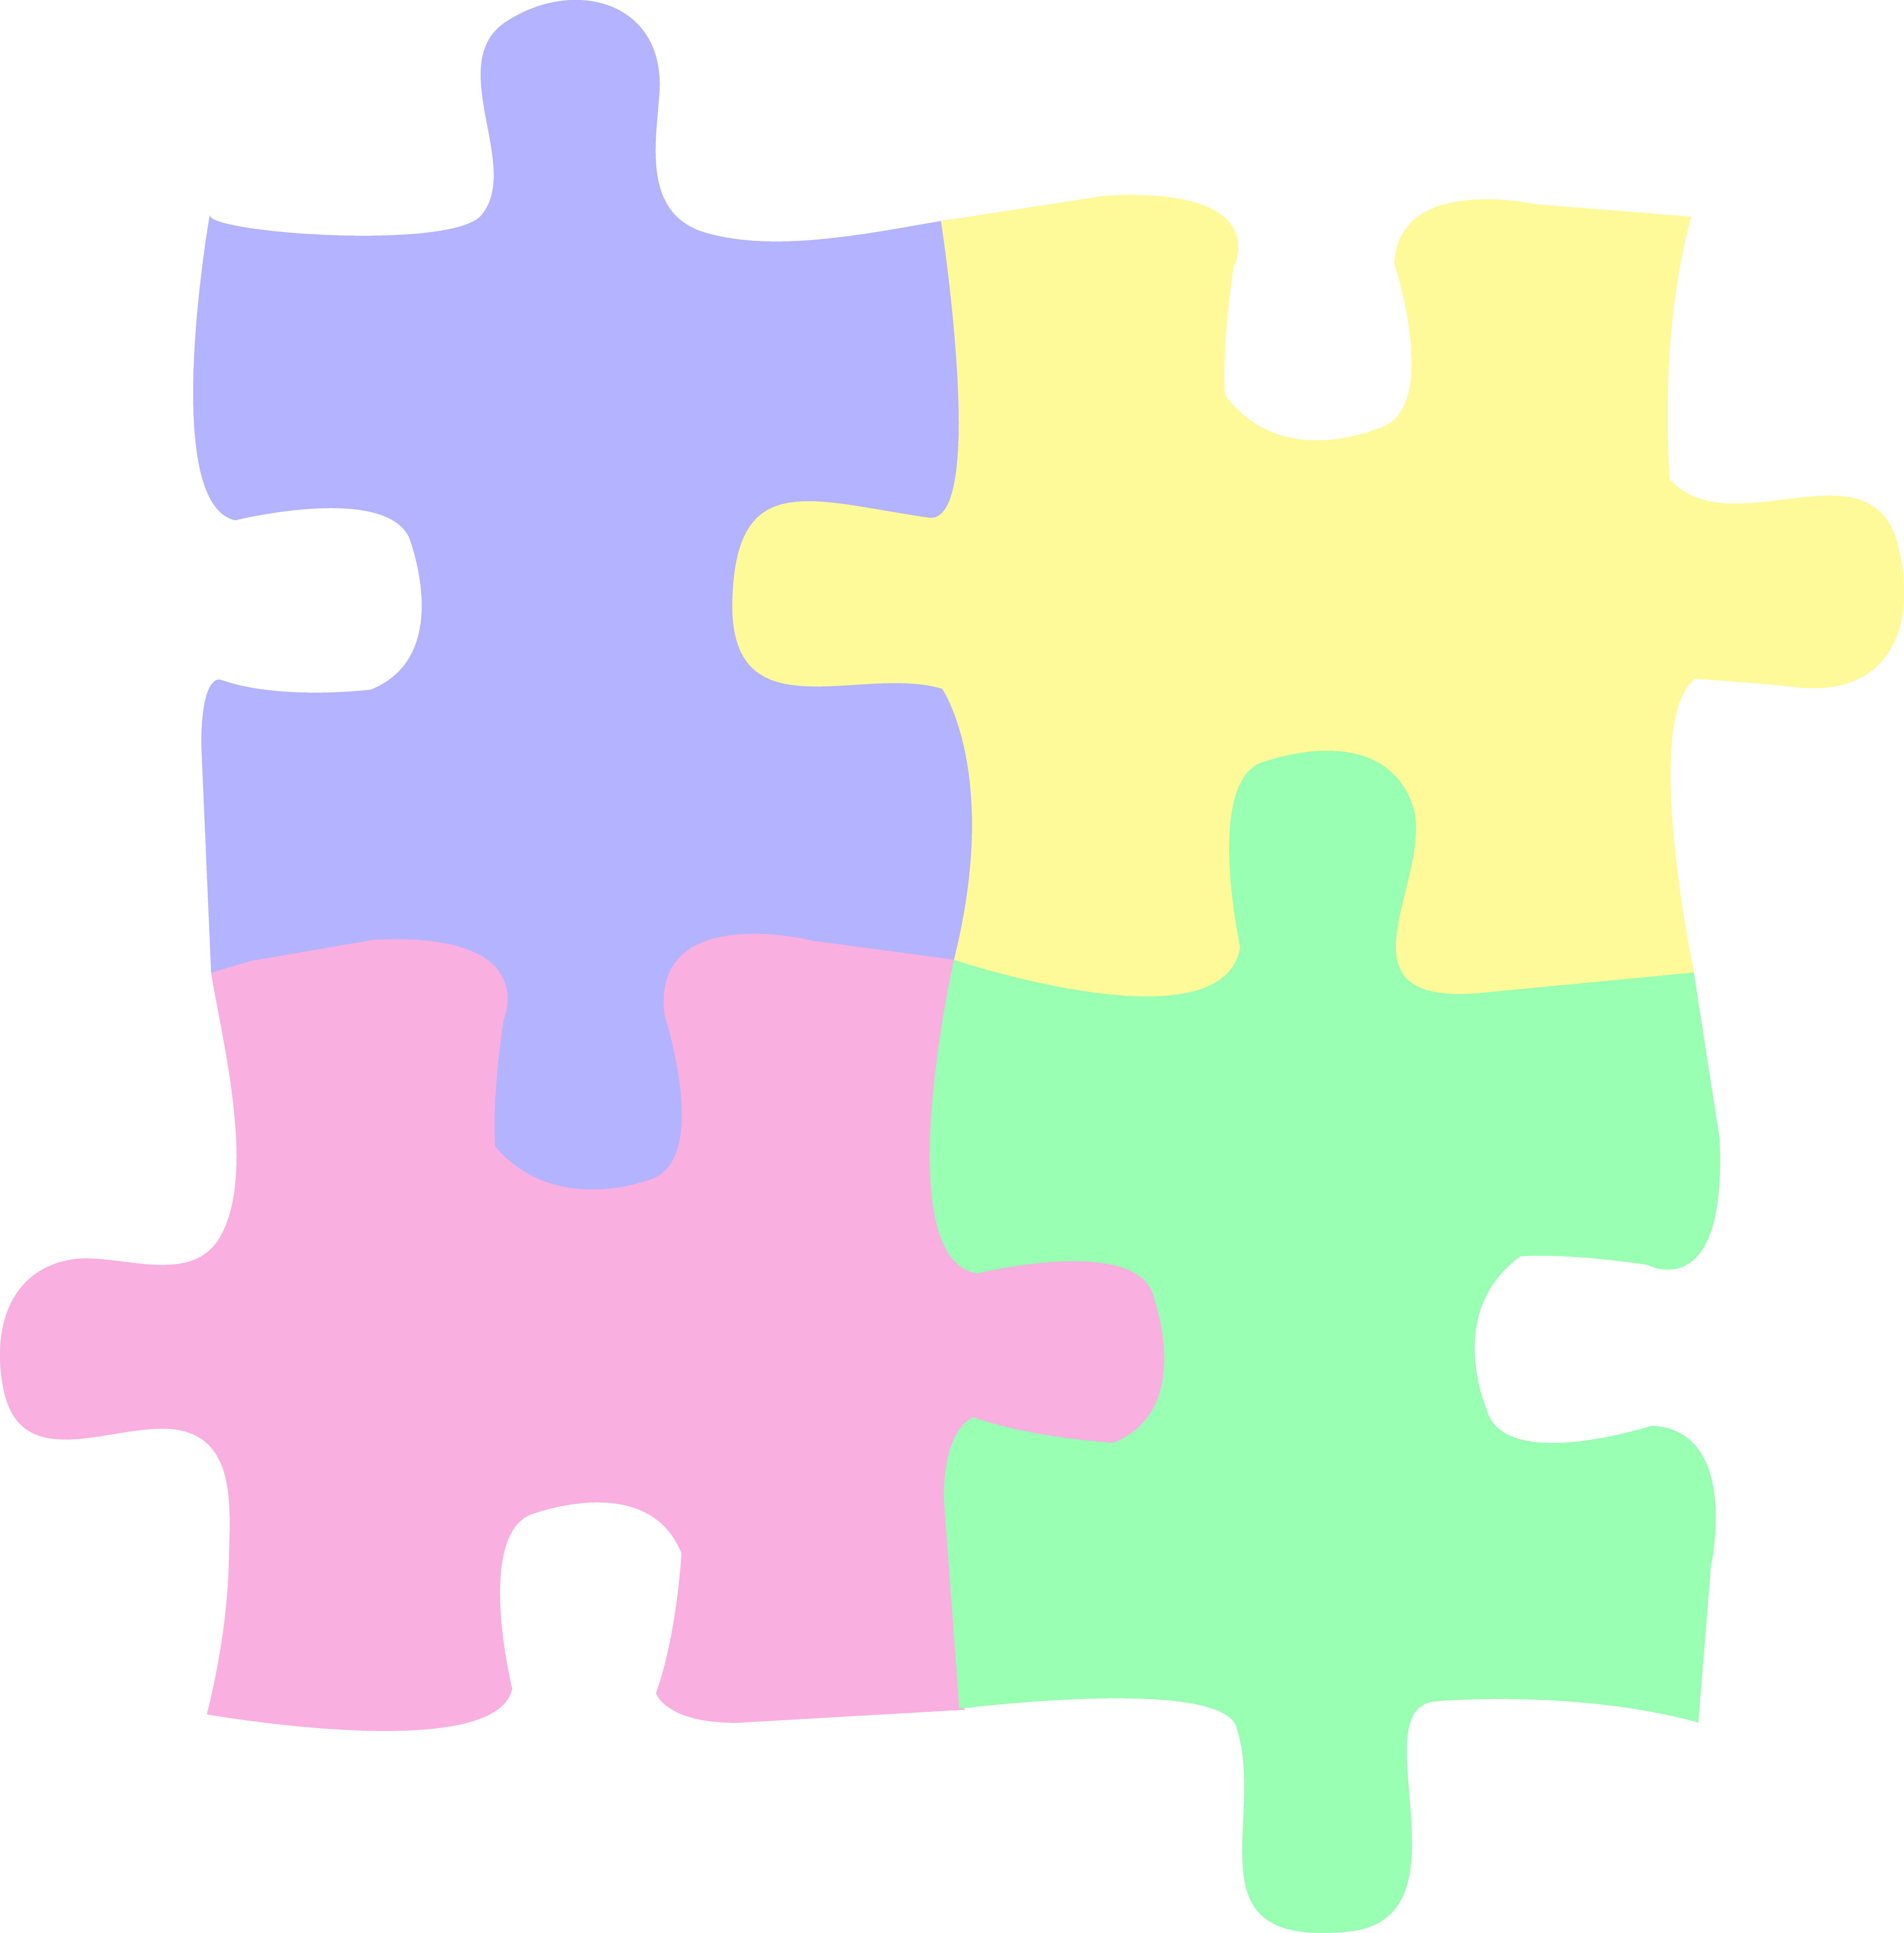 Puzzle clipart integrated. Logo children or autism